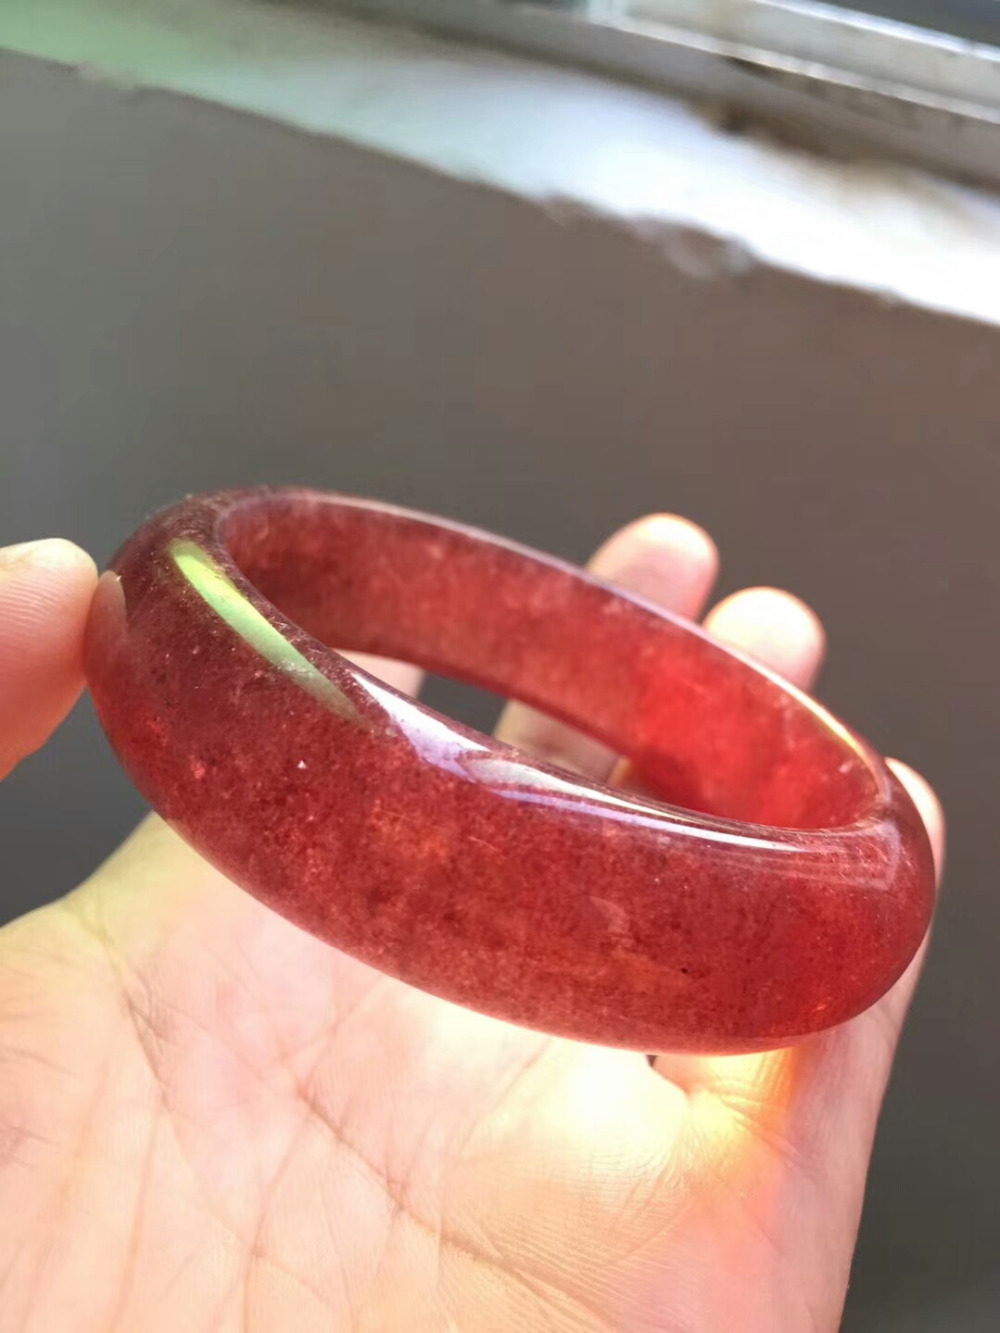 100% Natural Ice Red Strawberry Quartz Crystal Bangles Lady Bracelets For Women Crystal Female Inner Diameter 59mm AAAAAA100% Natural Ice Red Strawberry Quartz Crystal Bangles Lady Bracelets For Women Crystal Female Inner Diameter 59mm AAAAAA